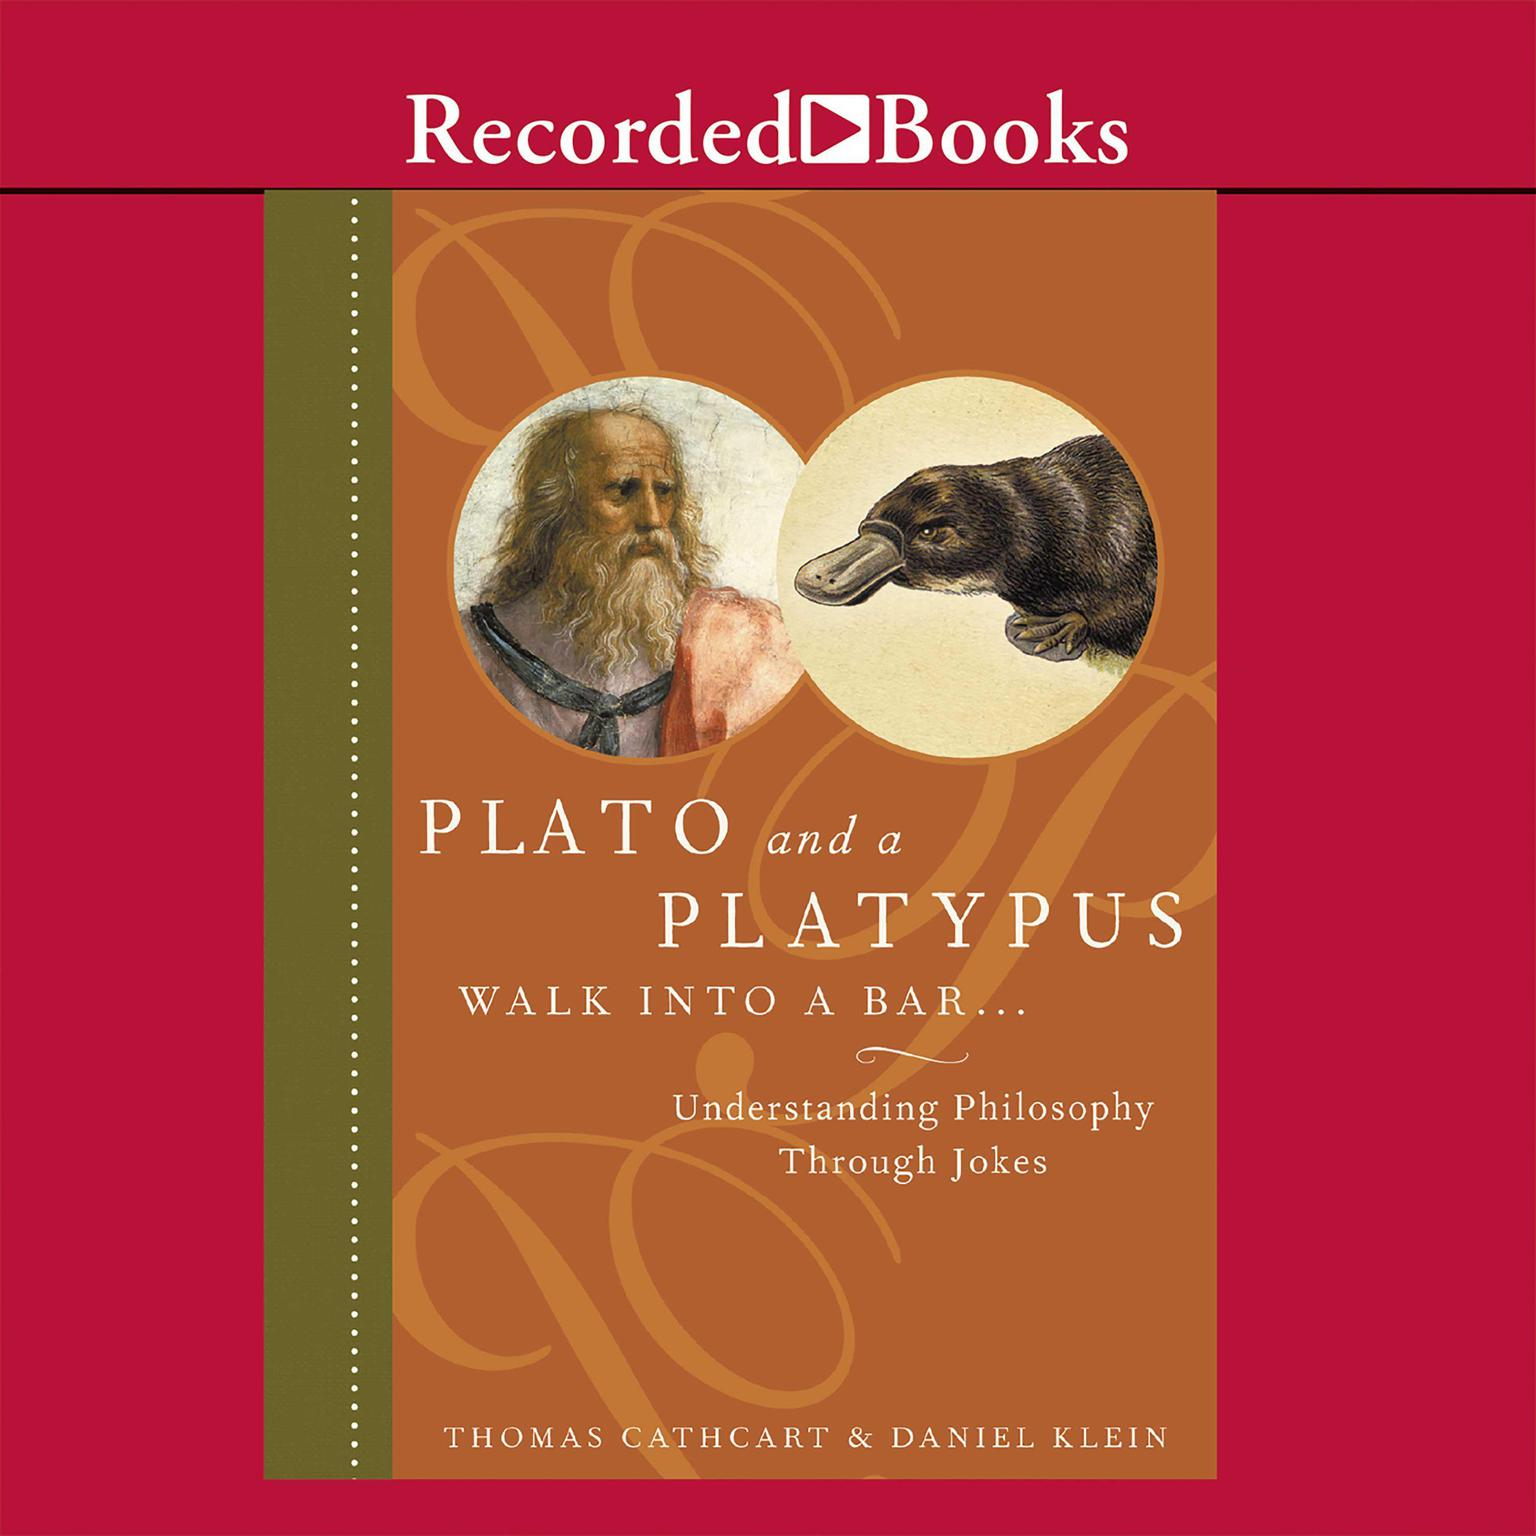 Printable Plato and a Platypus Walk into a Bar...: Understanding Philosophy Through Jokes Audiobook Cover Art